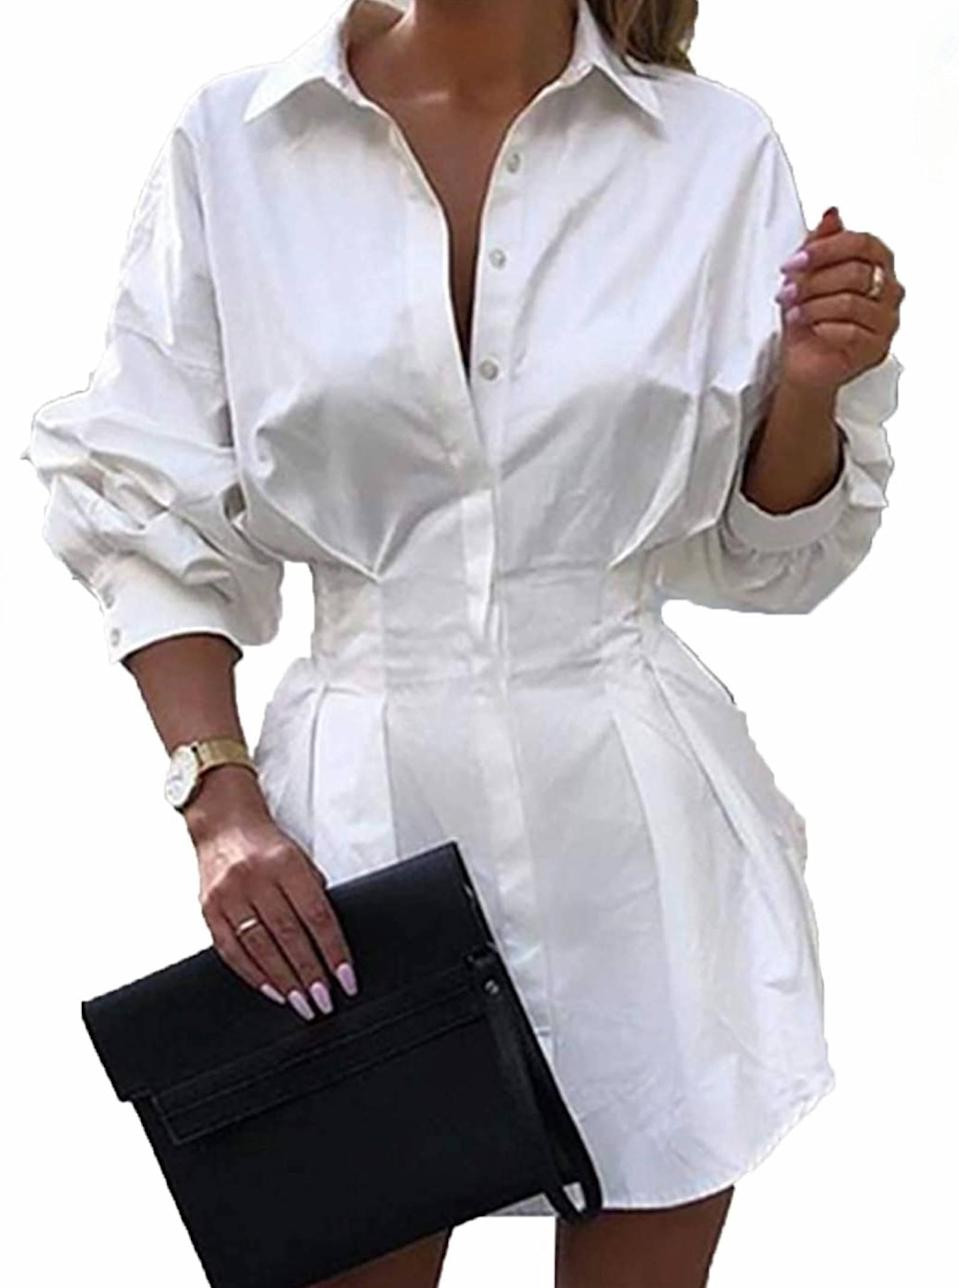 """An edgy pick for anyone who can never have enough <a href=""""https://www.glamour.com/gallery/best-white-button-down-shirts-women?mbid=synd_yahoo_rss"""" rel=""""nofollow noopener"""" target=""""_blank"""" data-ylk=""""slk:white button-downs"""" class=""""link rapid-noclick-resp"""">white button-downs</a>. $27, Amazon. <a href=""""https://www.amazon.com/Shirtdress-Women-Button-Sleeve-Blouse/dp/B07WGMM17T/"""" rel=""""nofollow noopener"""" target=""""_blank"""" data-ylk=""""slk:Get it now!"""" class=""""link rapid-noclick-resp"""">Get it now!</a>"""